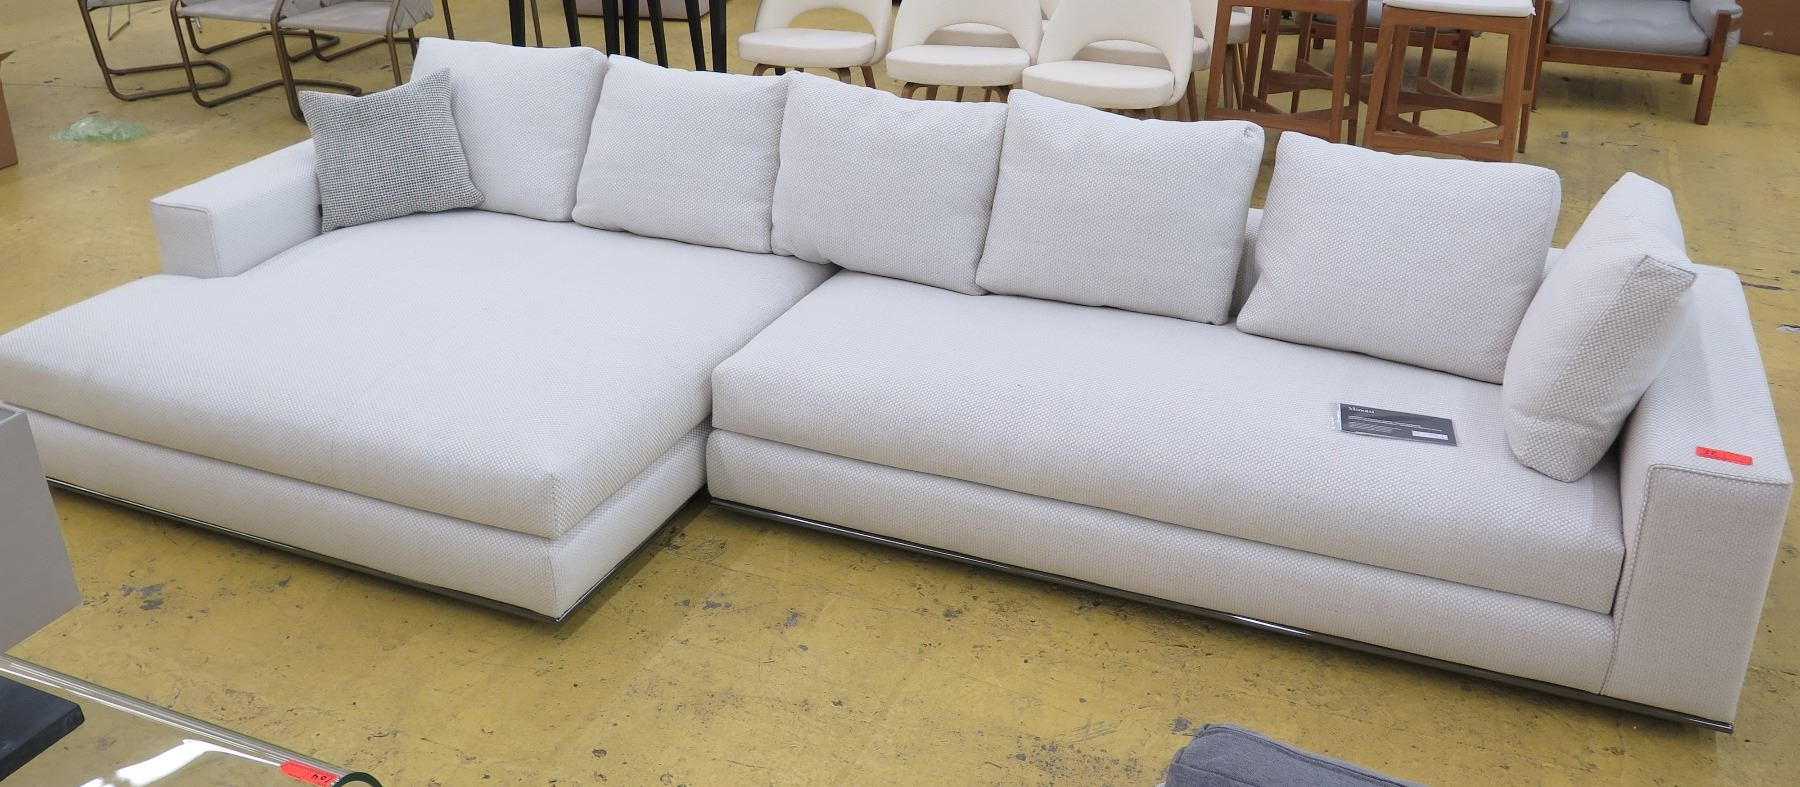 Miraculous White Beige Woven Minotti Sectional Sofa 2 Sections 143 Caraccident5 Cool Chair Designs And Ideas Caraccident5Info